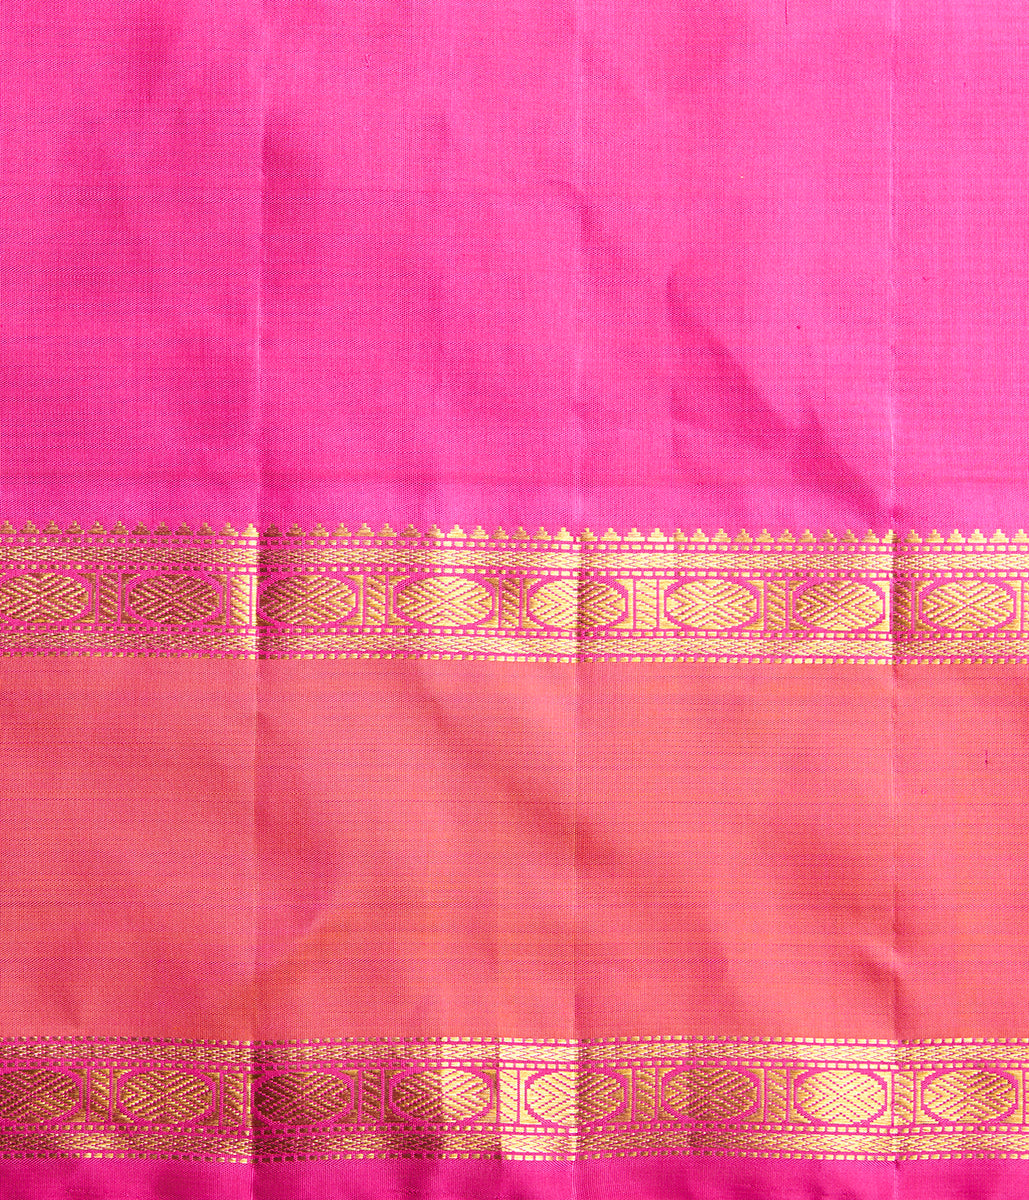 Handwoven black and white checks kanjivaram silk saree with a pink border